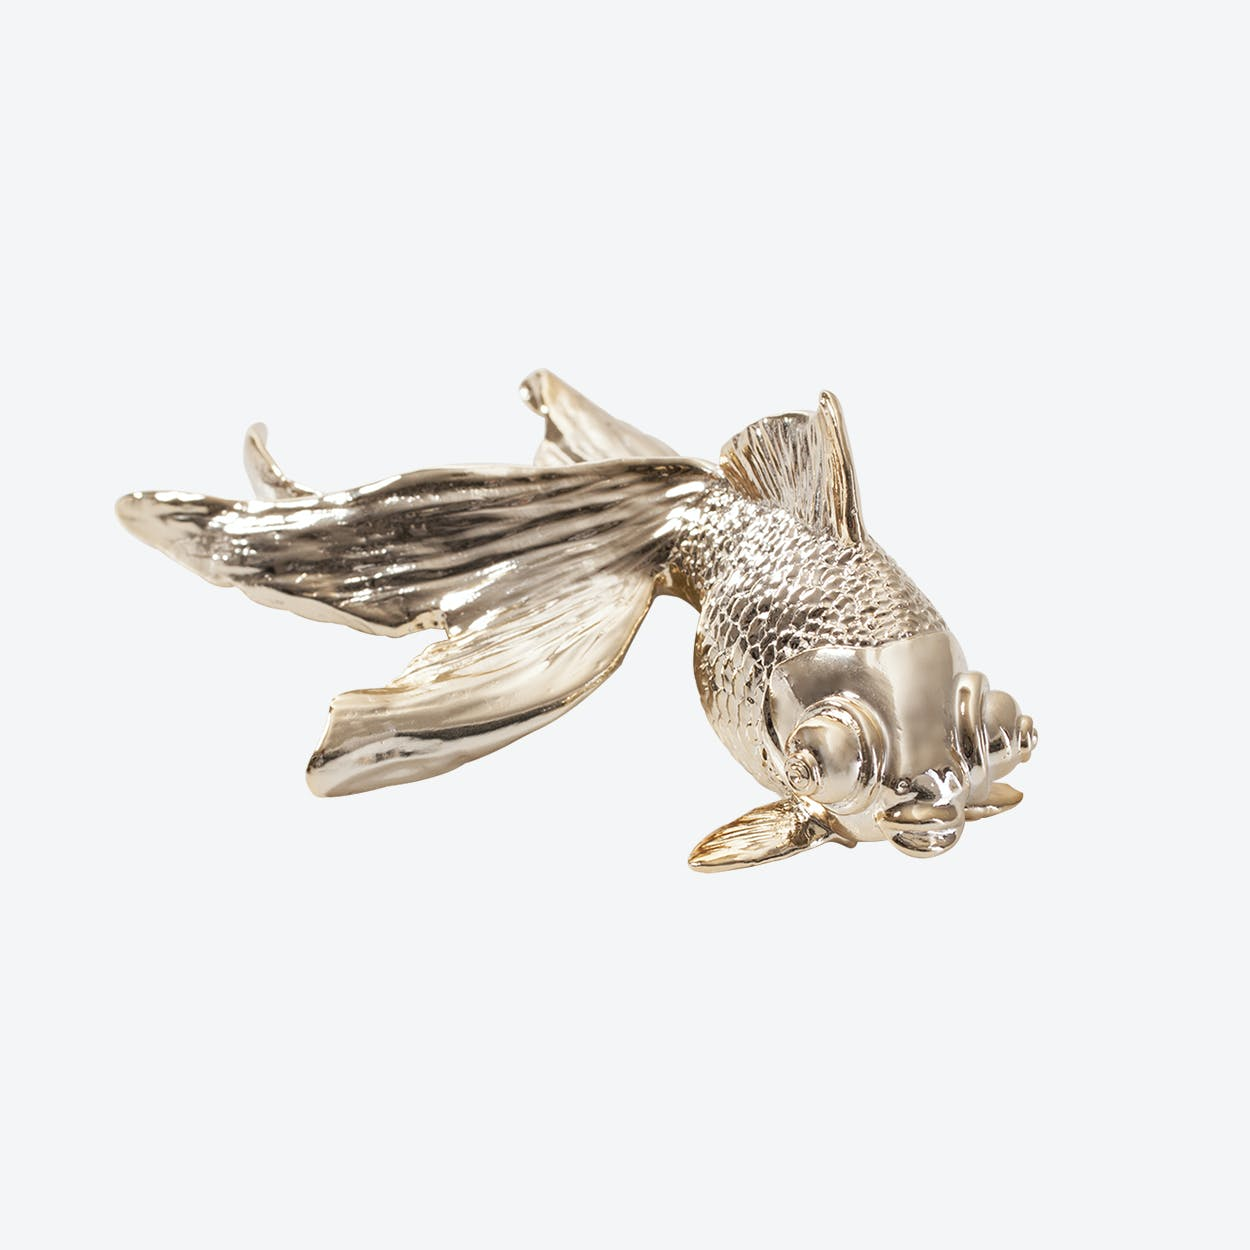 Goldfish Paperweight